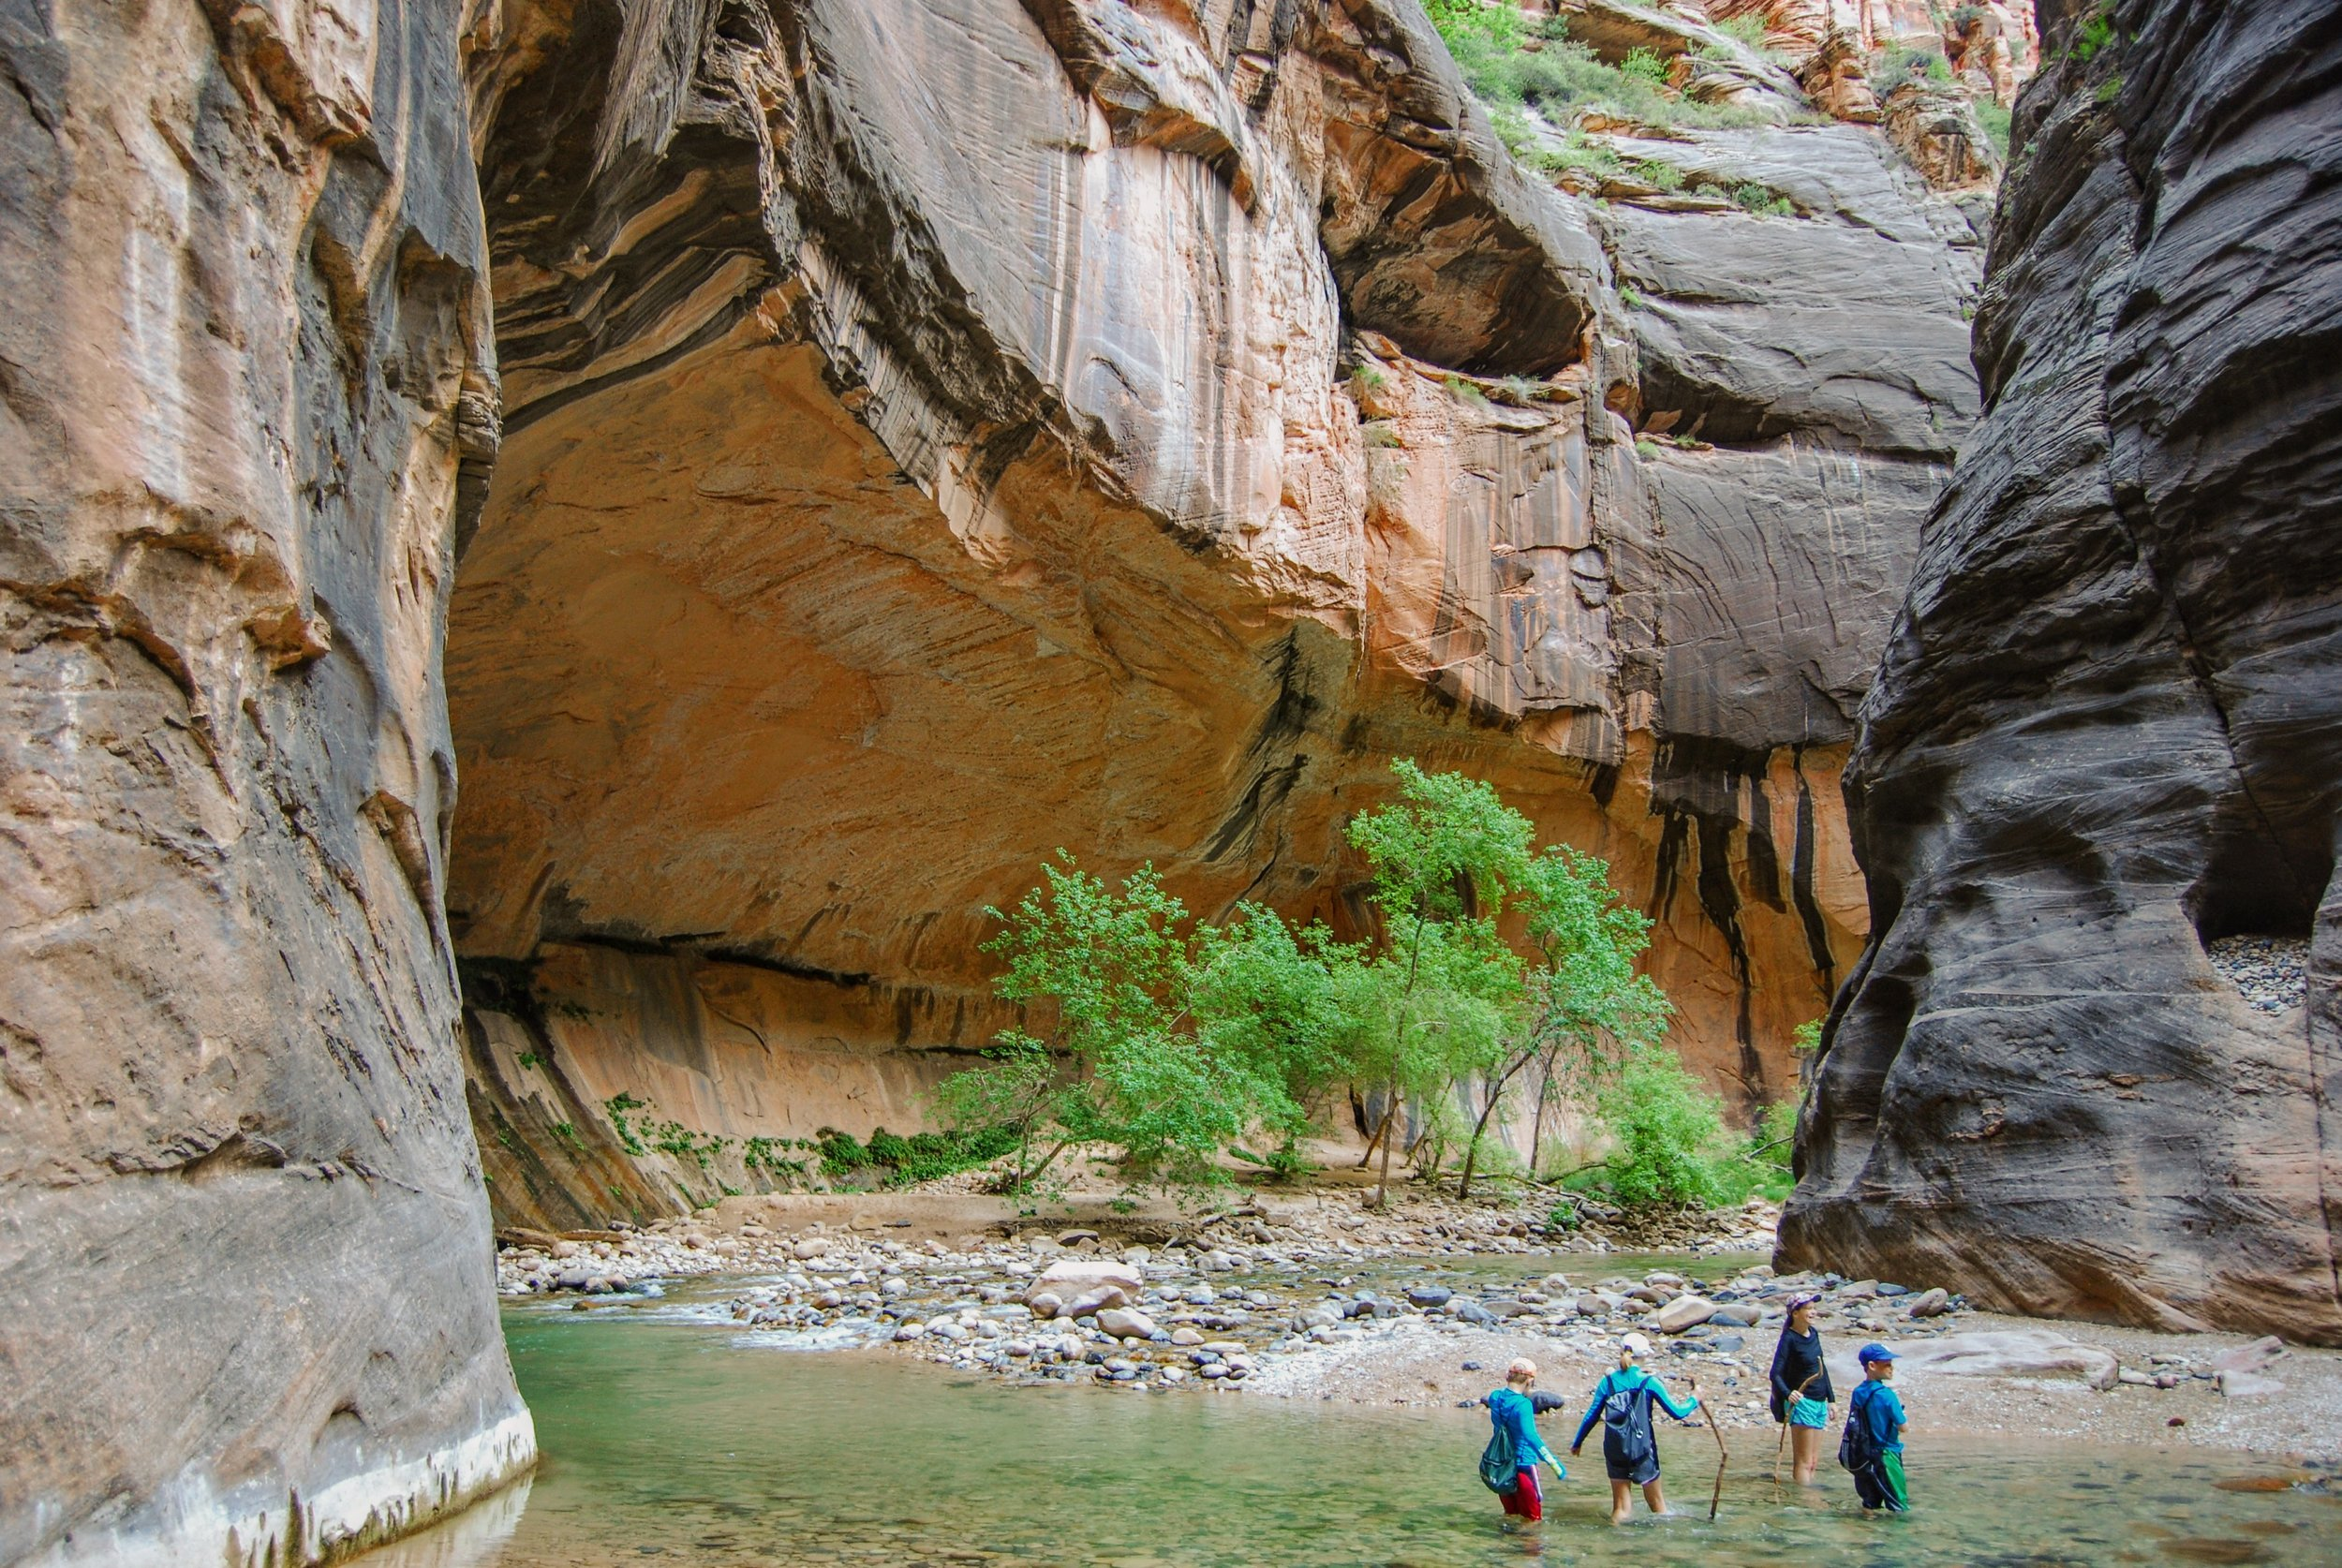 The Narrows is one of my favorite hikes. Ever.